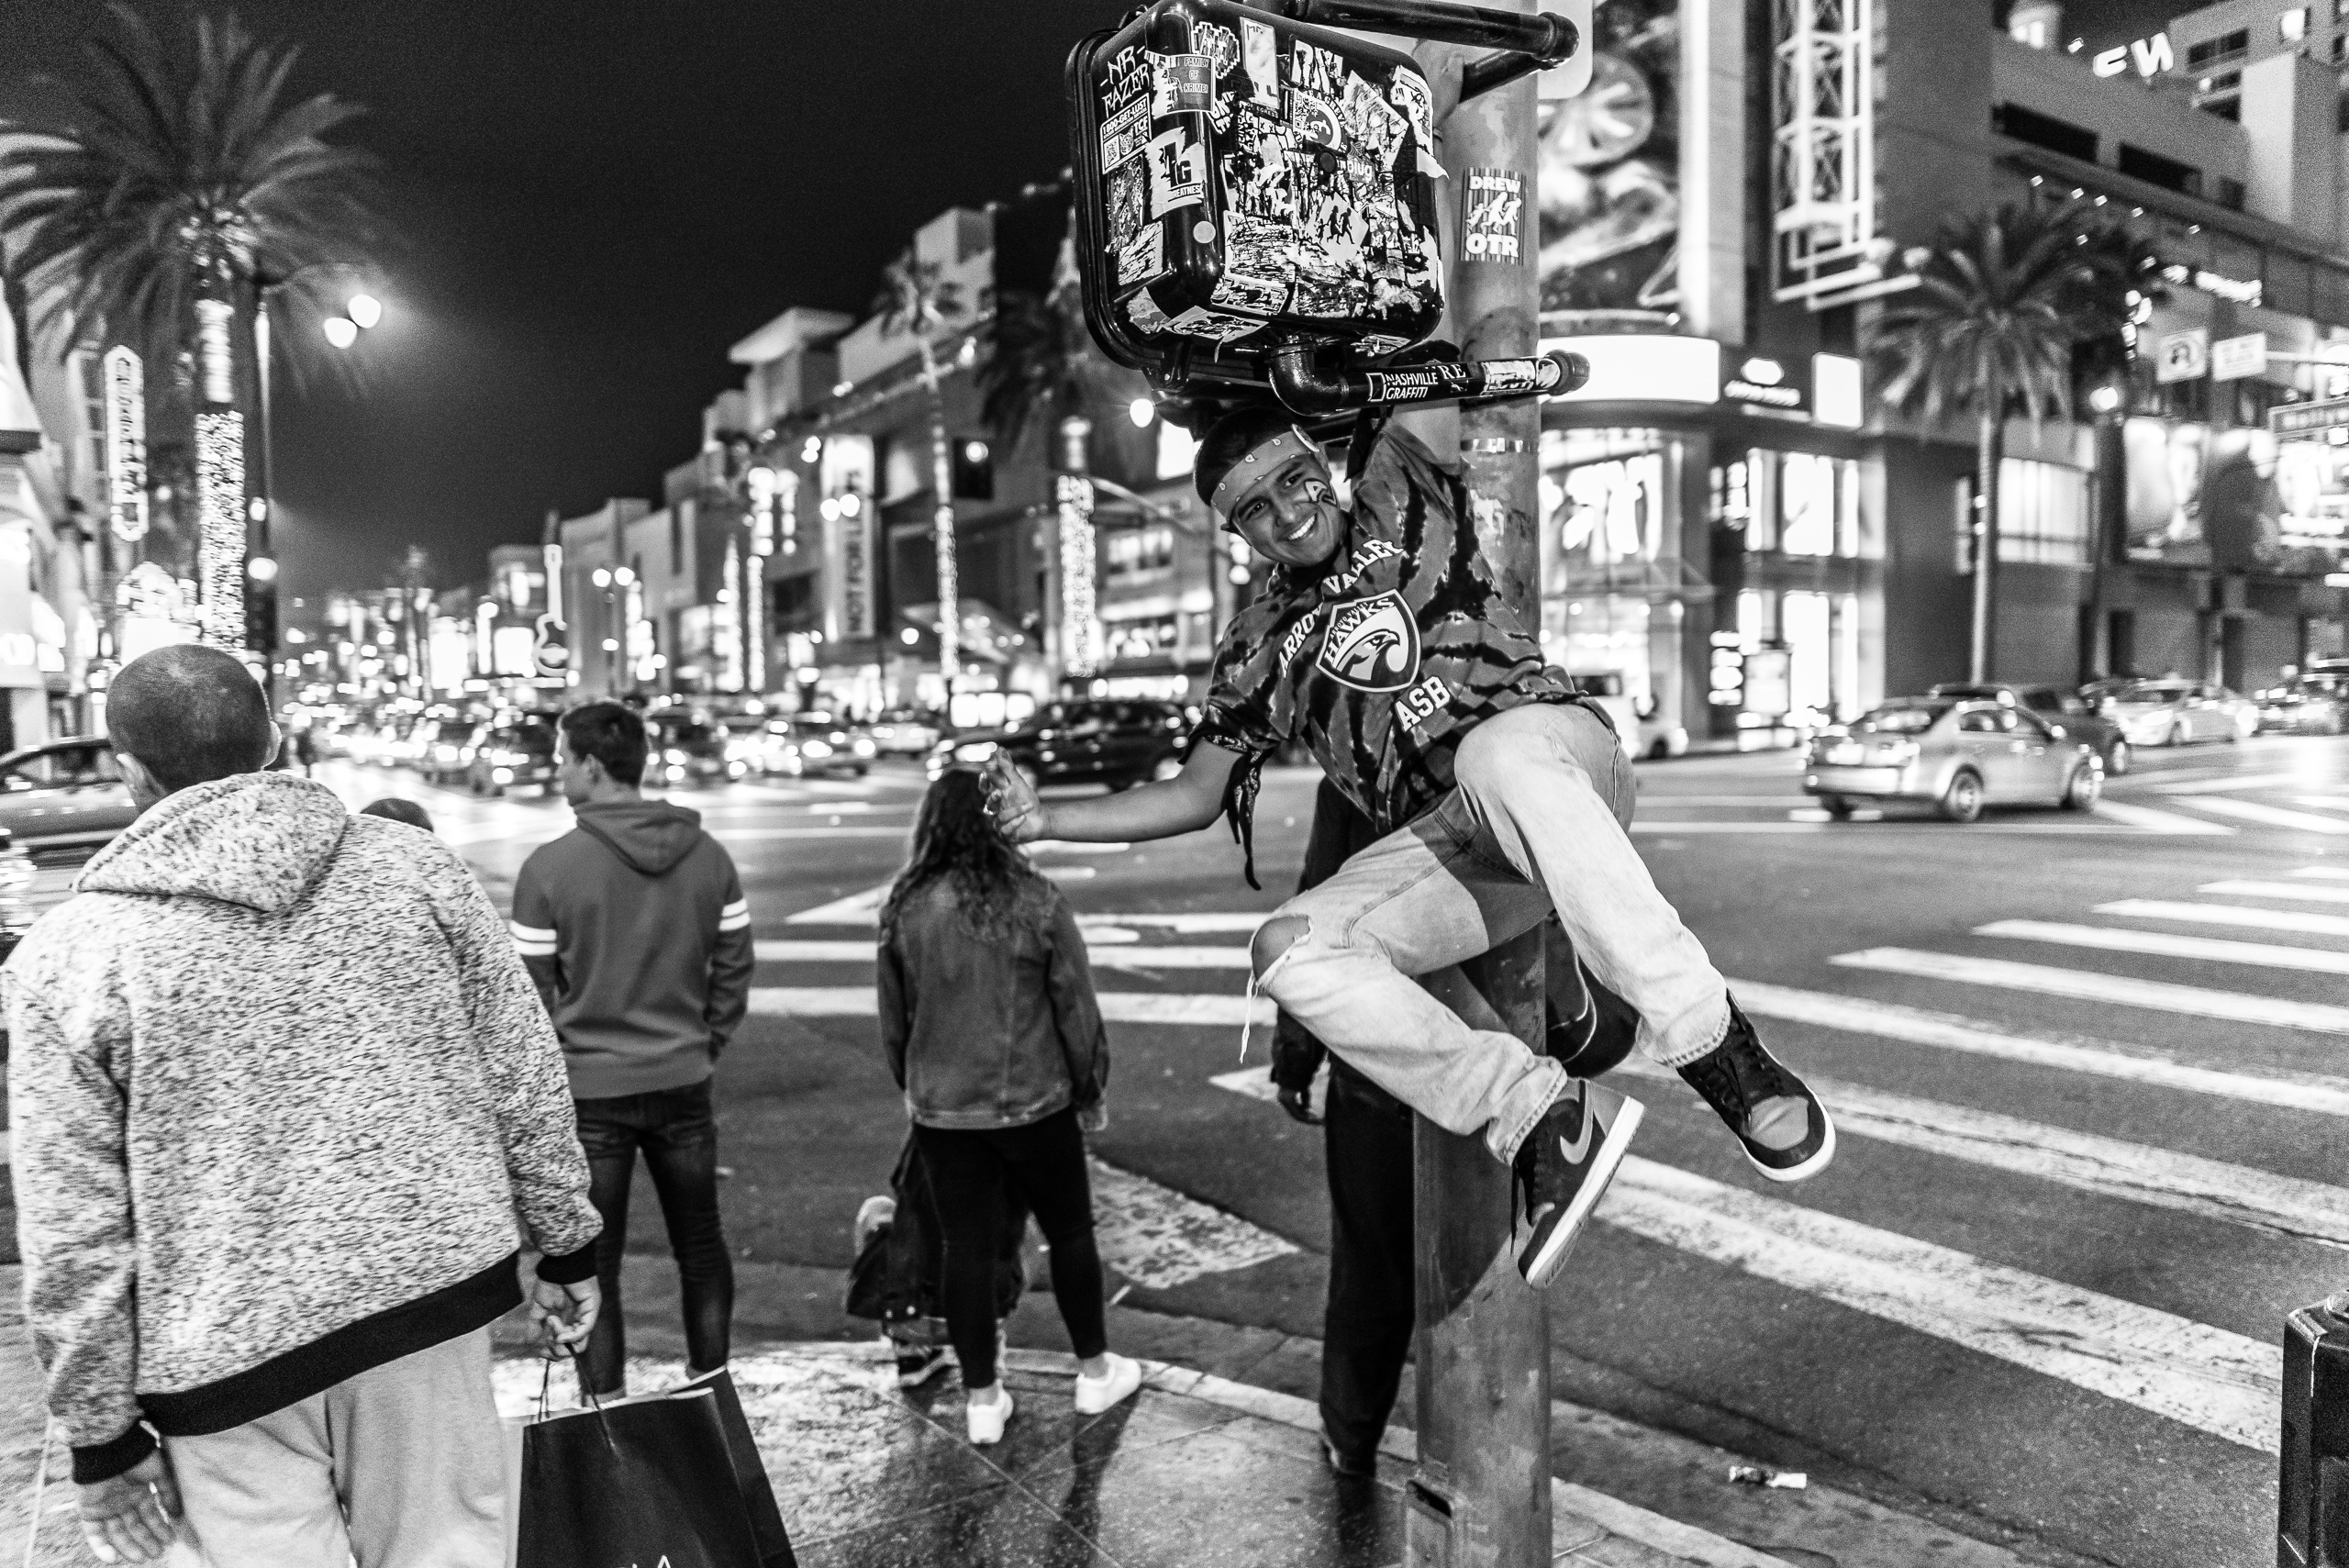 a young man hangs from a streetlight on the corner of Hollywood and Highland in Hollywood, Los Angeles, California